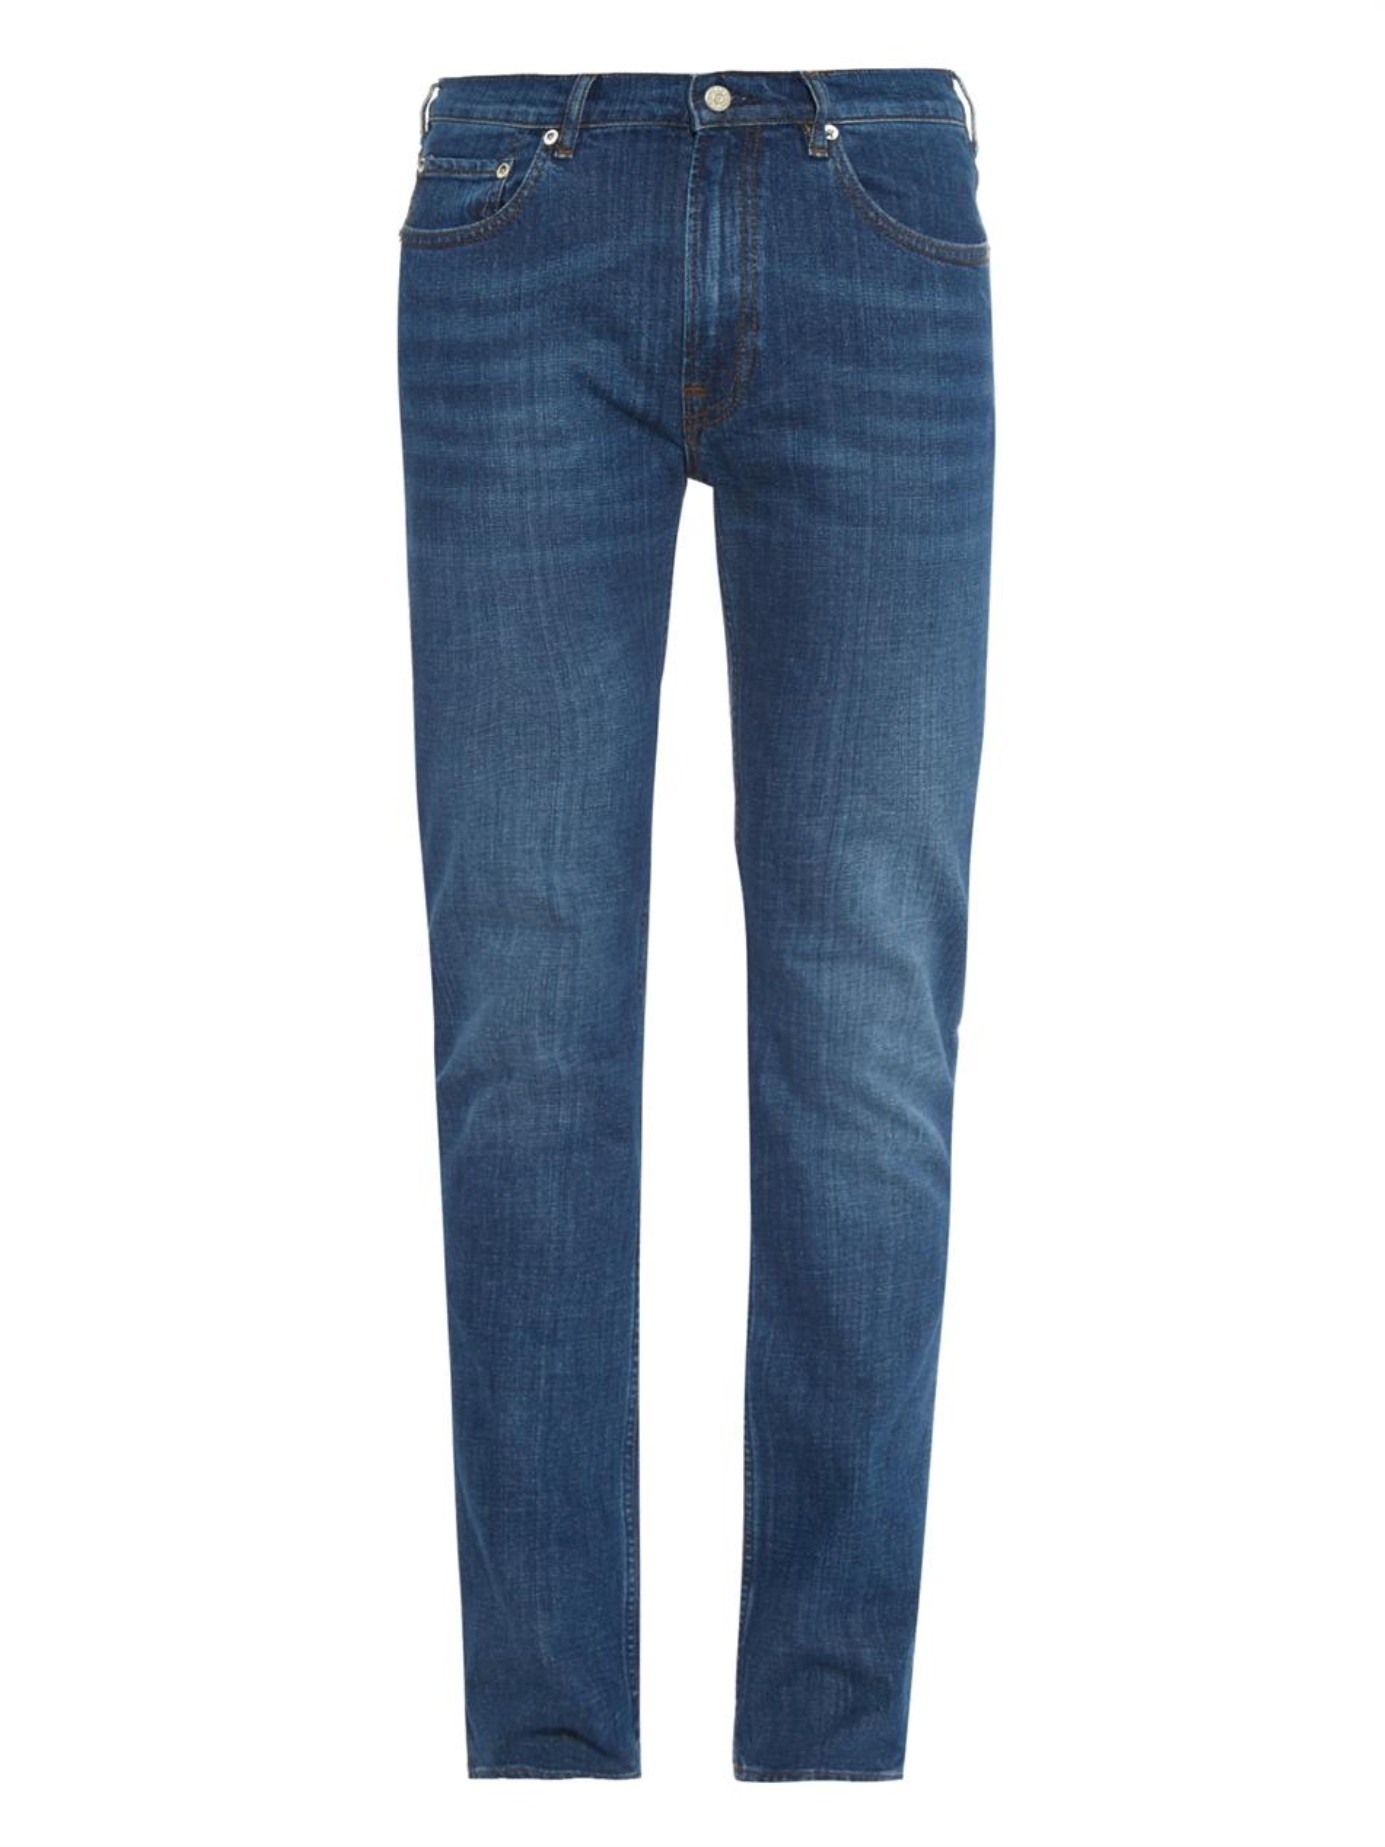 acne studios ace light vintage skinny jeans in blue for men lyst. Black Bedroom Furniture Sets. Home Design Ideas